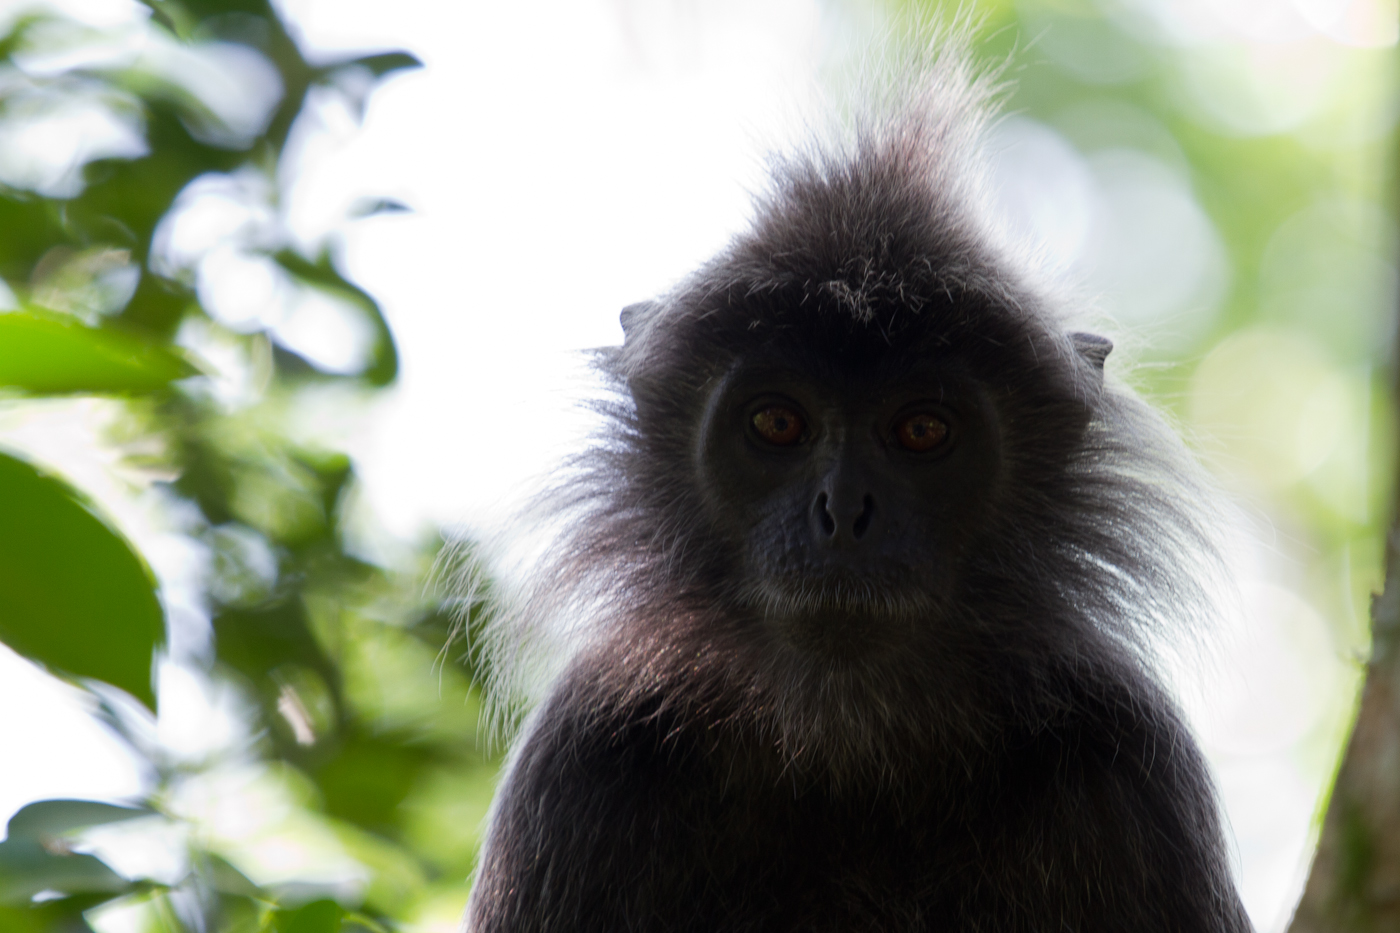 Silver Leaf Monkey, Taman Alam, Kuala Selangor Nature Park. Like from a Dr. Seuss story, right?